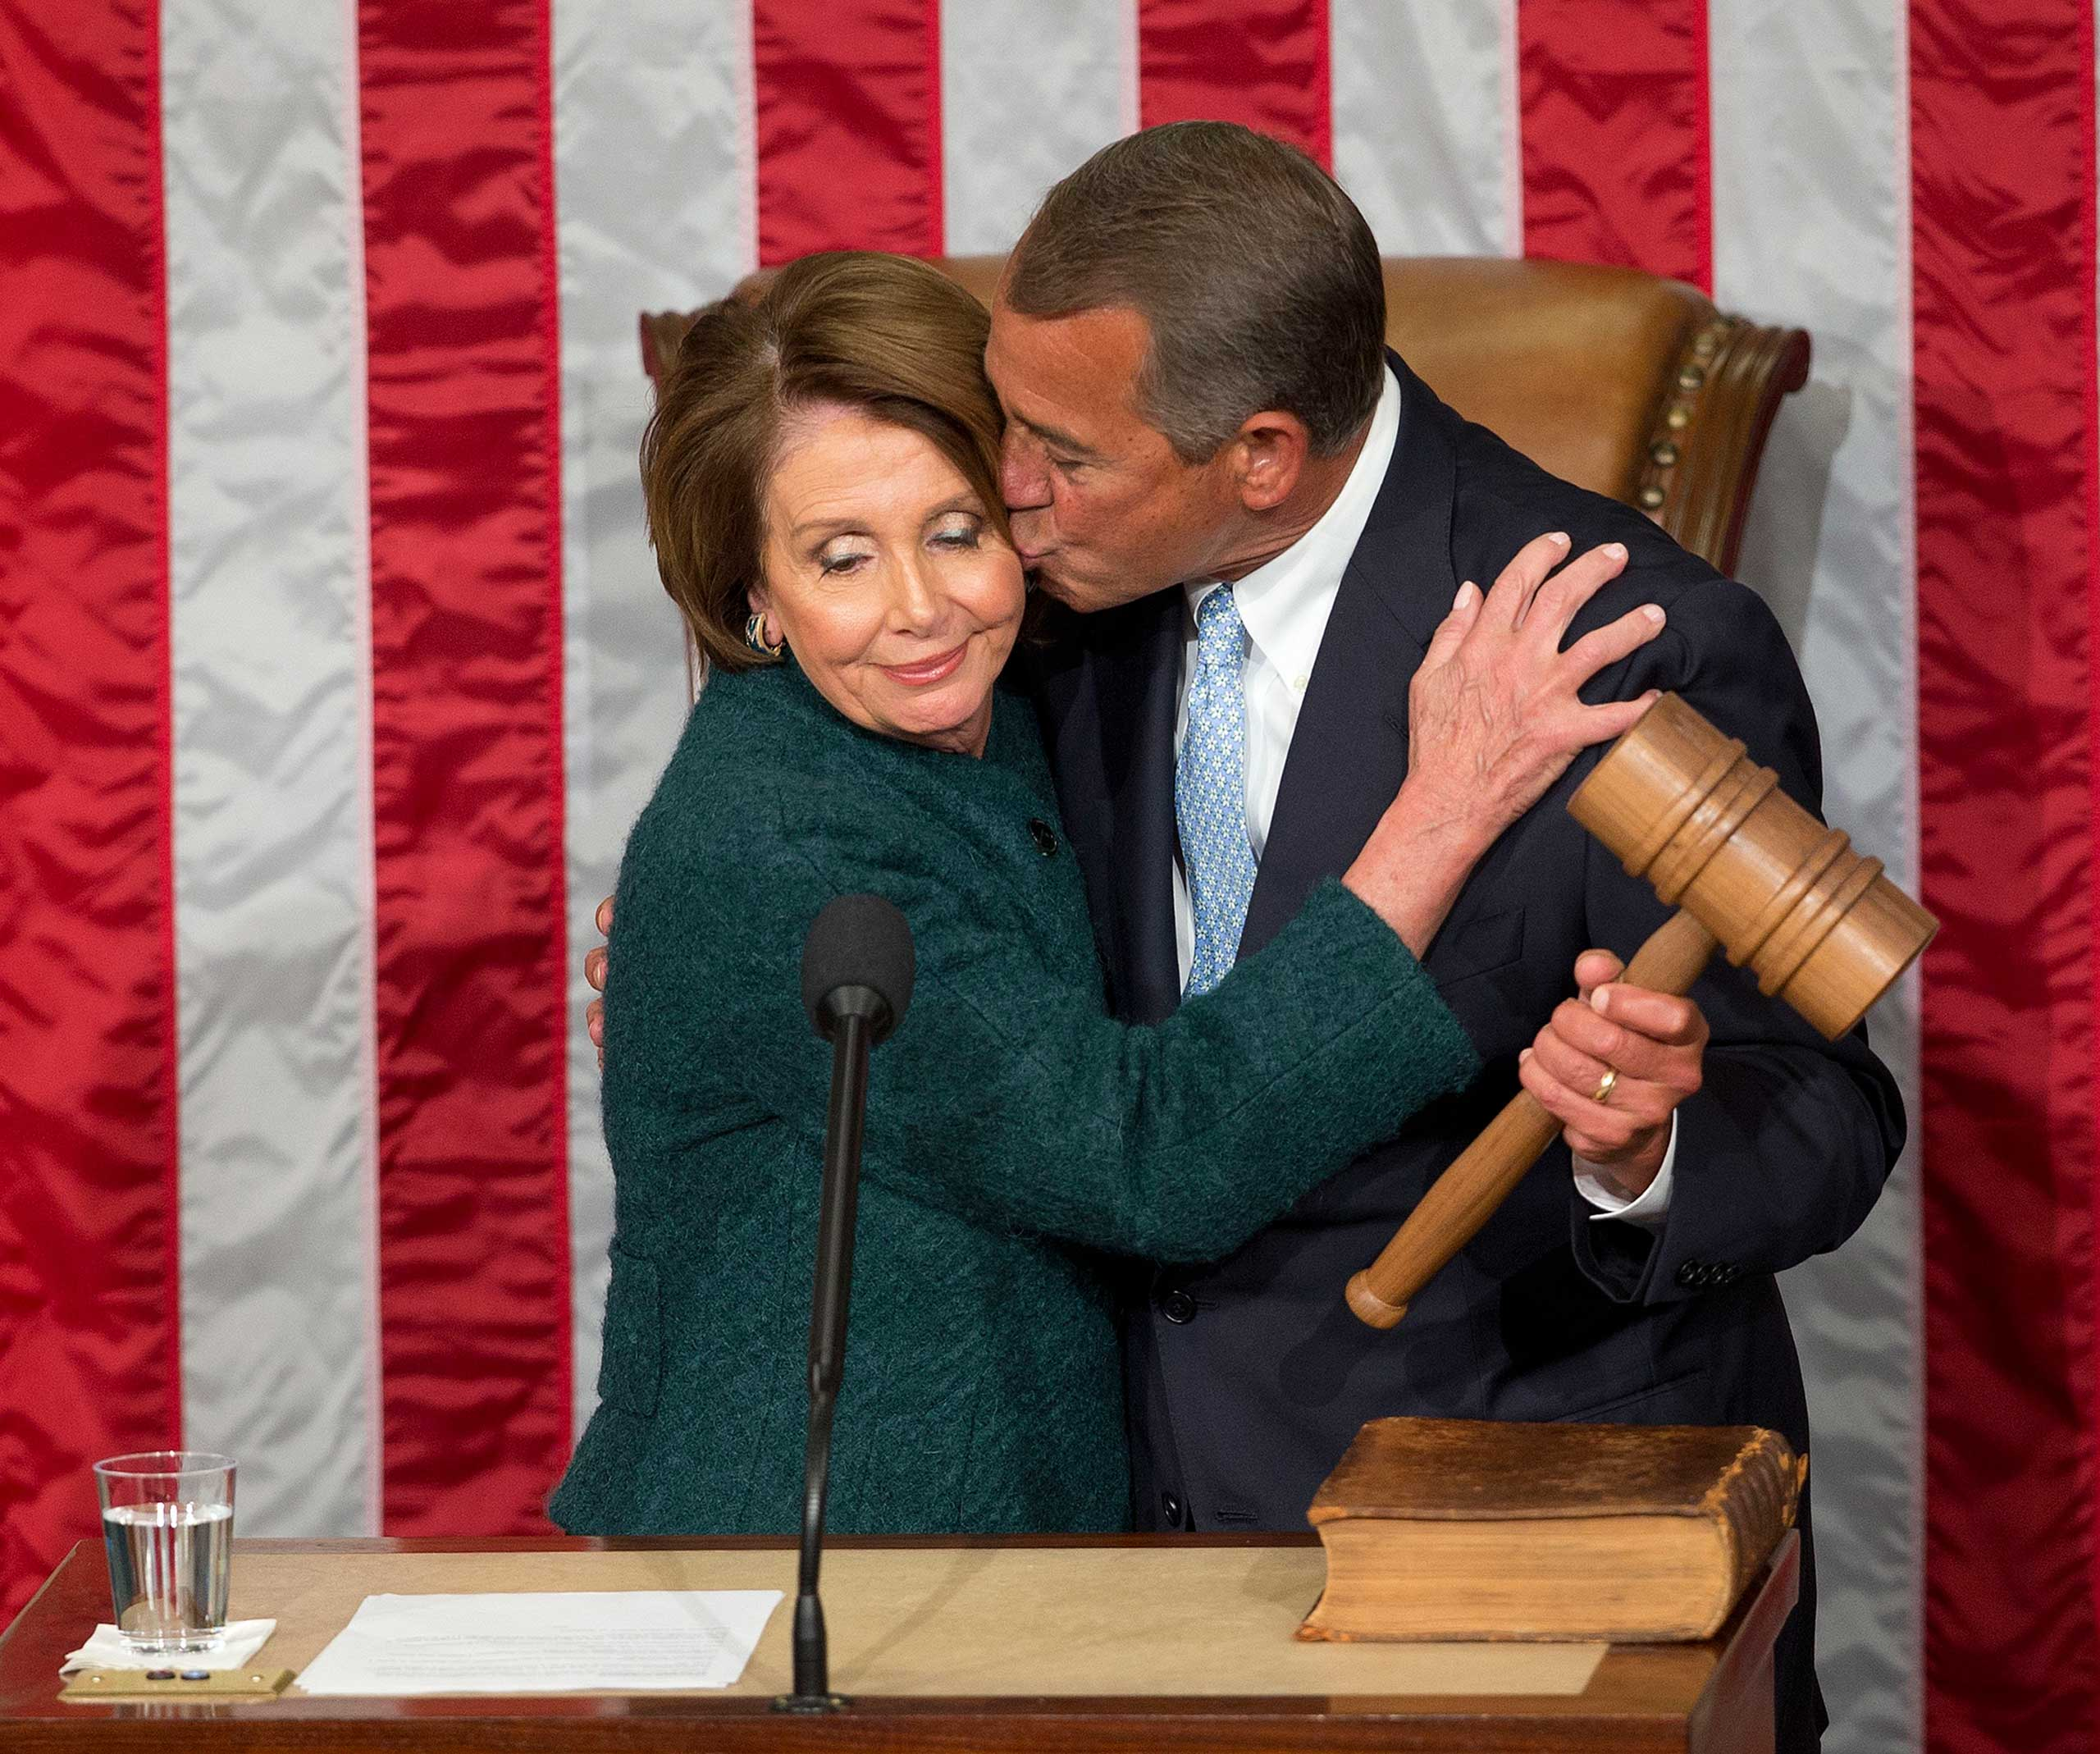 House Speaker John Boehner of Ohio, kisses House Minority Leader Nancy Pelosi of Calif. after being re-elected to a third term during the opening session of the 114th Congress on Capitol Hill in Washington on Jan. 6, 2015.